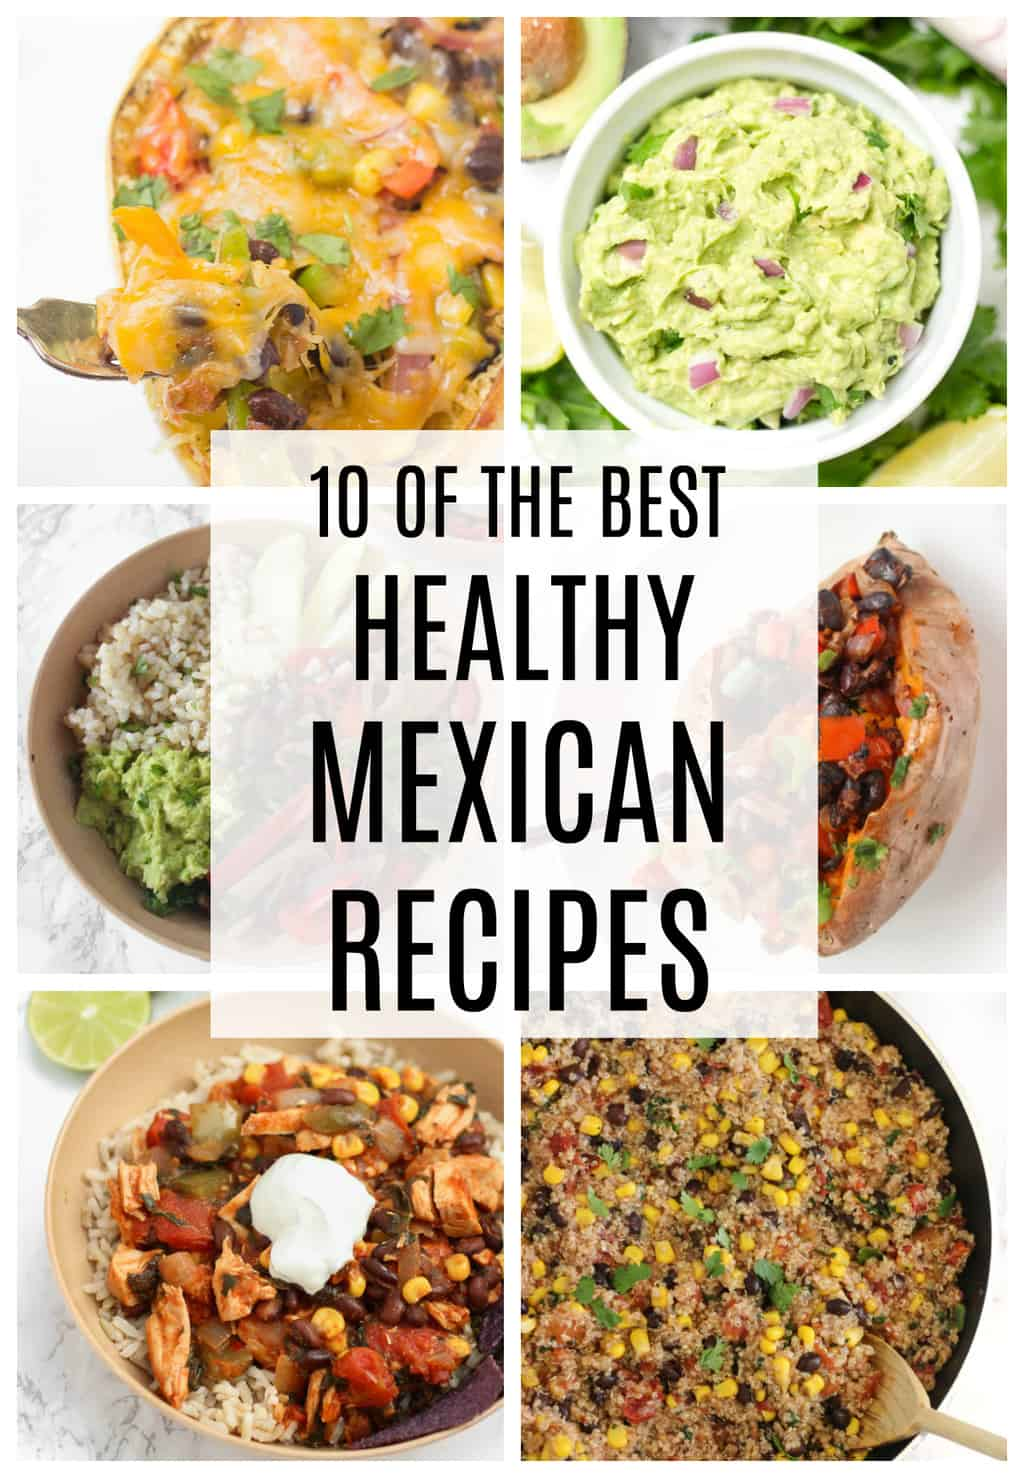 Simple, healthy Mexican recipes that are DELICIOUS